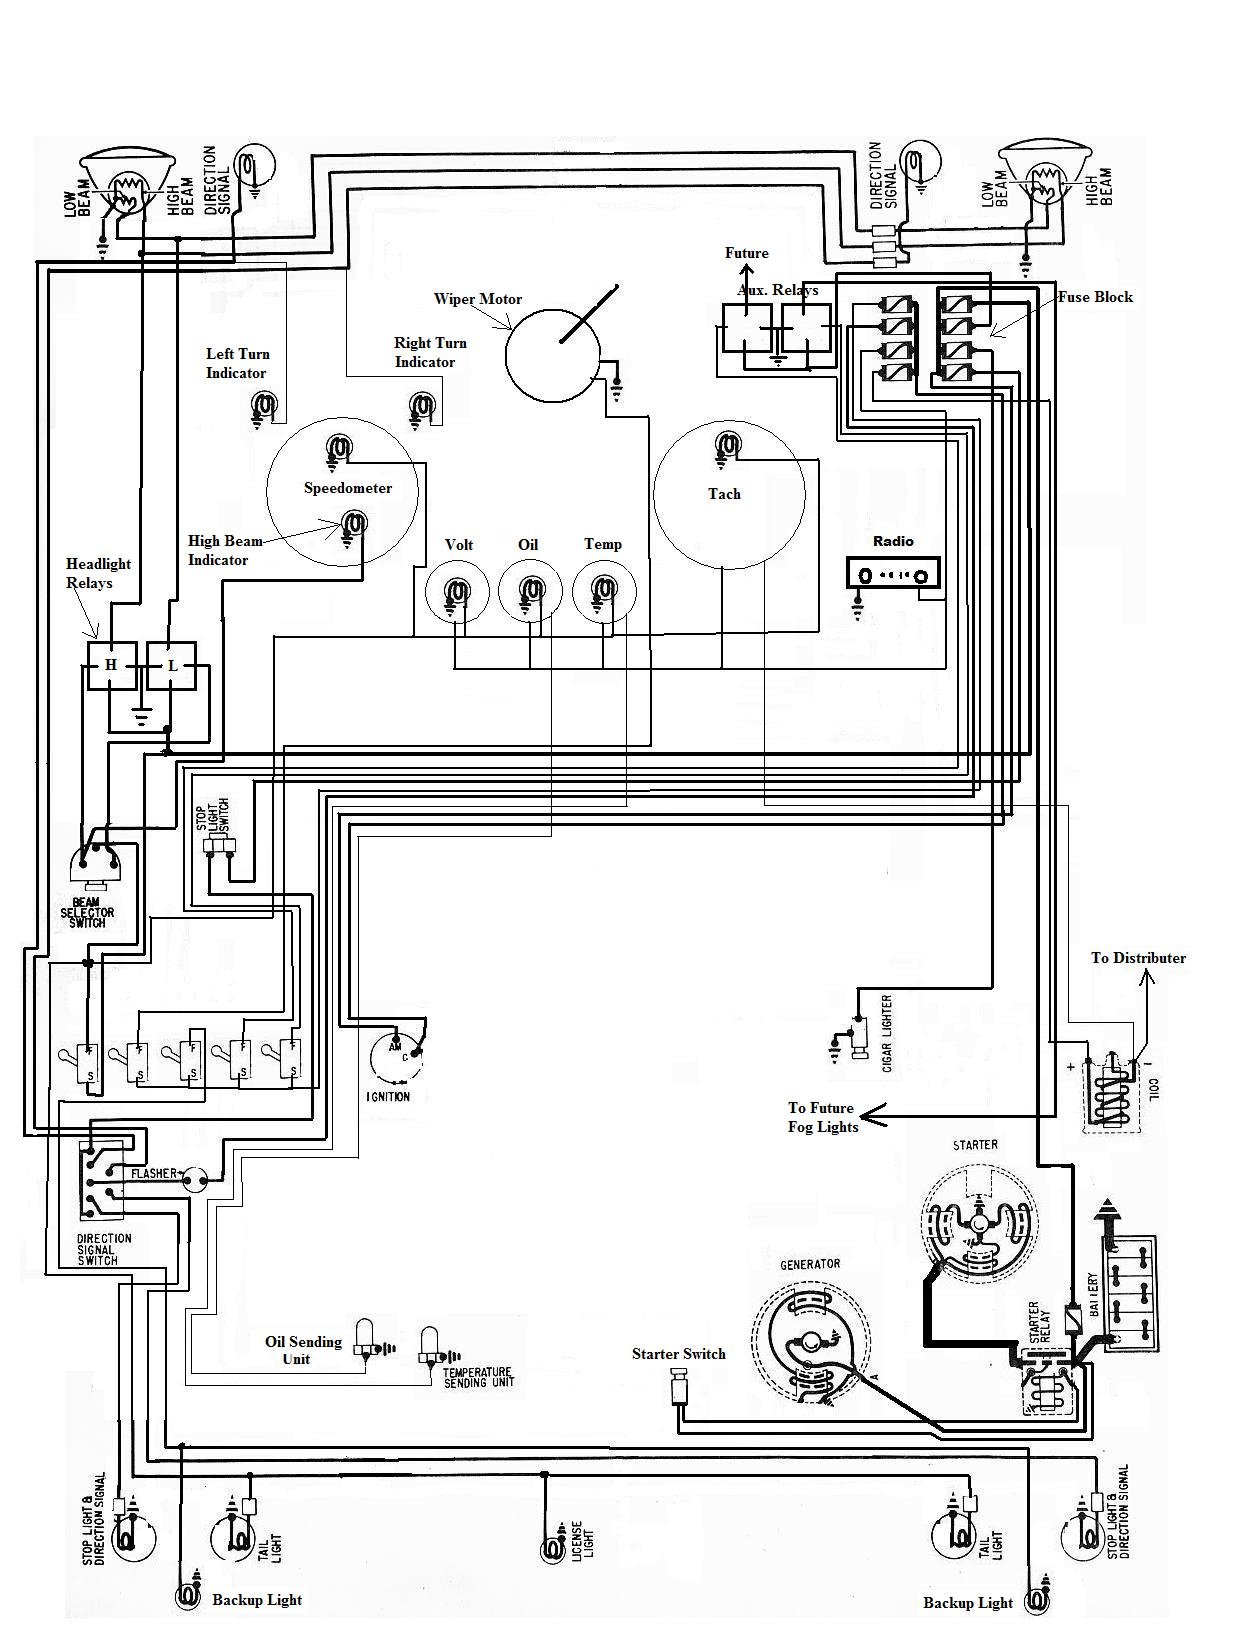 dunebuggy_wiring other diagrams dune buggy wiring schematic at nearapp.co